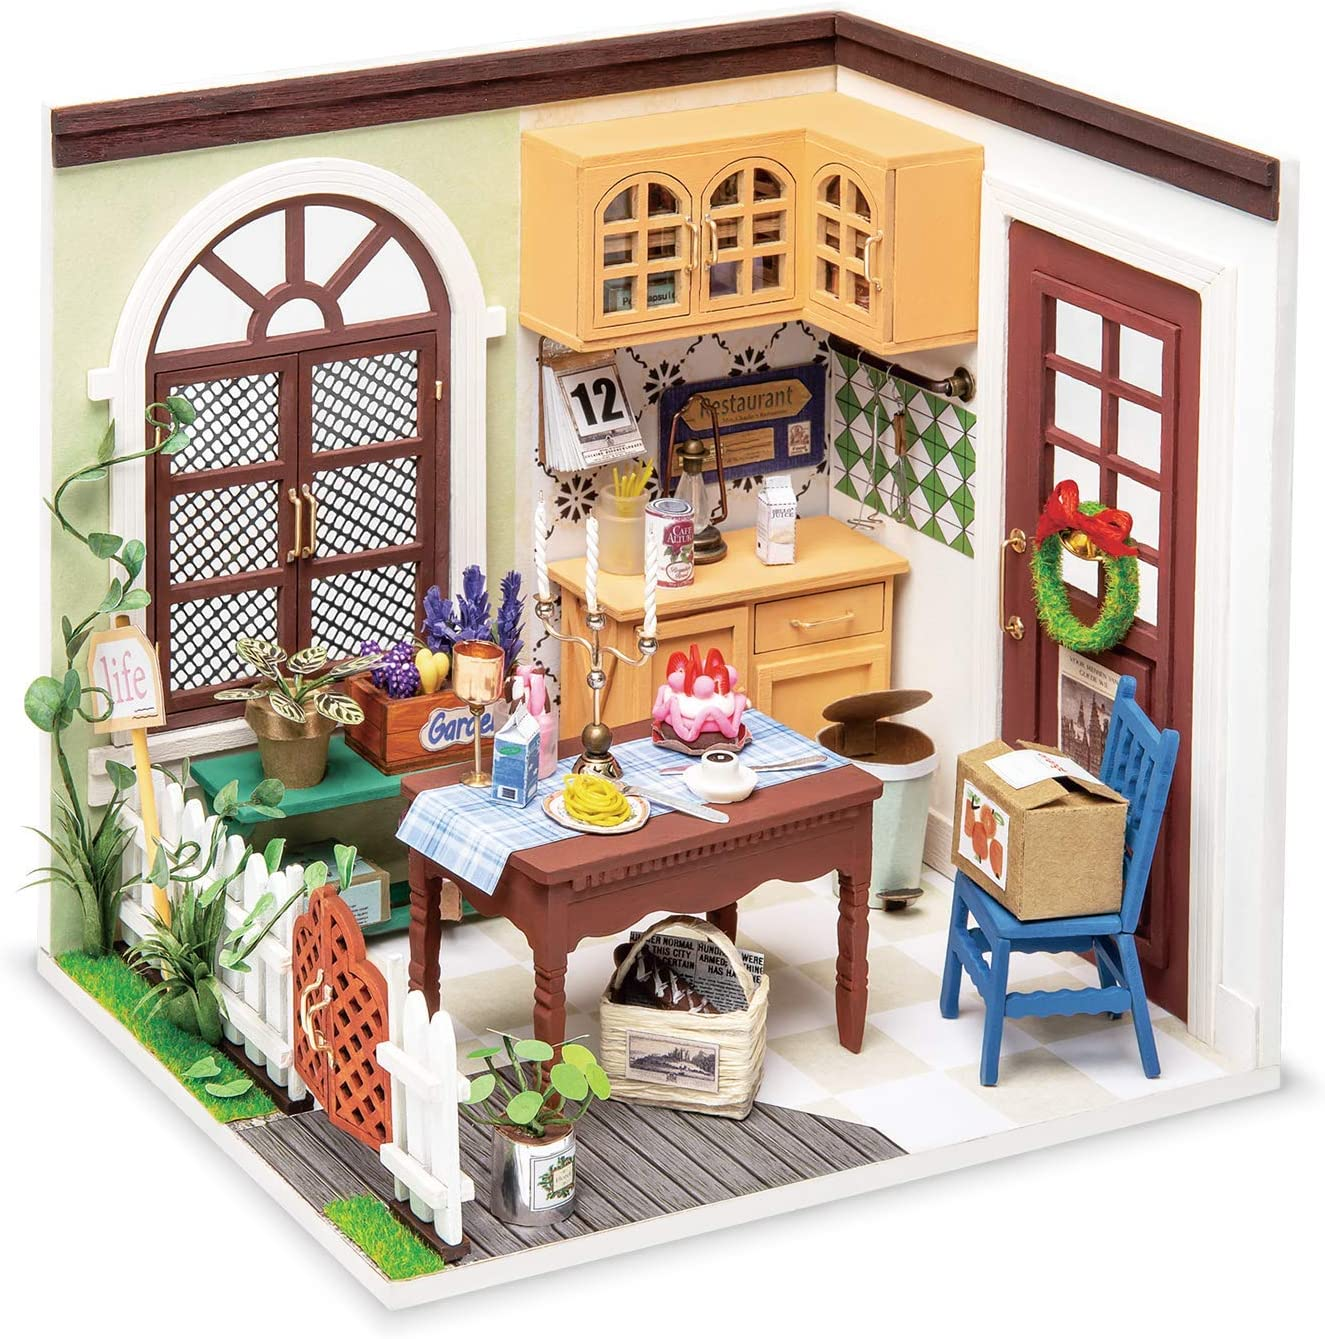 ROBOTIME DIY Miniature Dollhouse Kit Mini House with Furnitures 1:24 Scale Craft Kit - Mrs Charlie's Dining Room